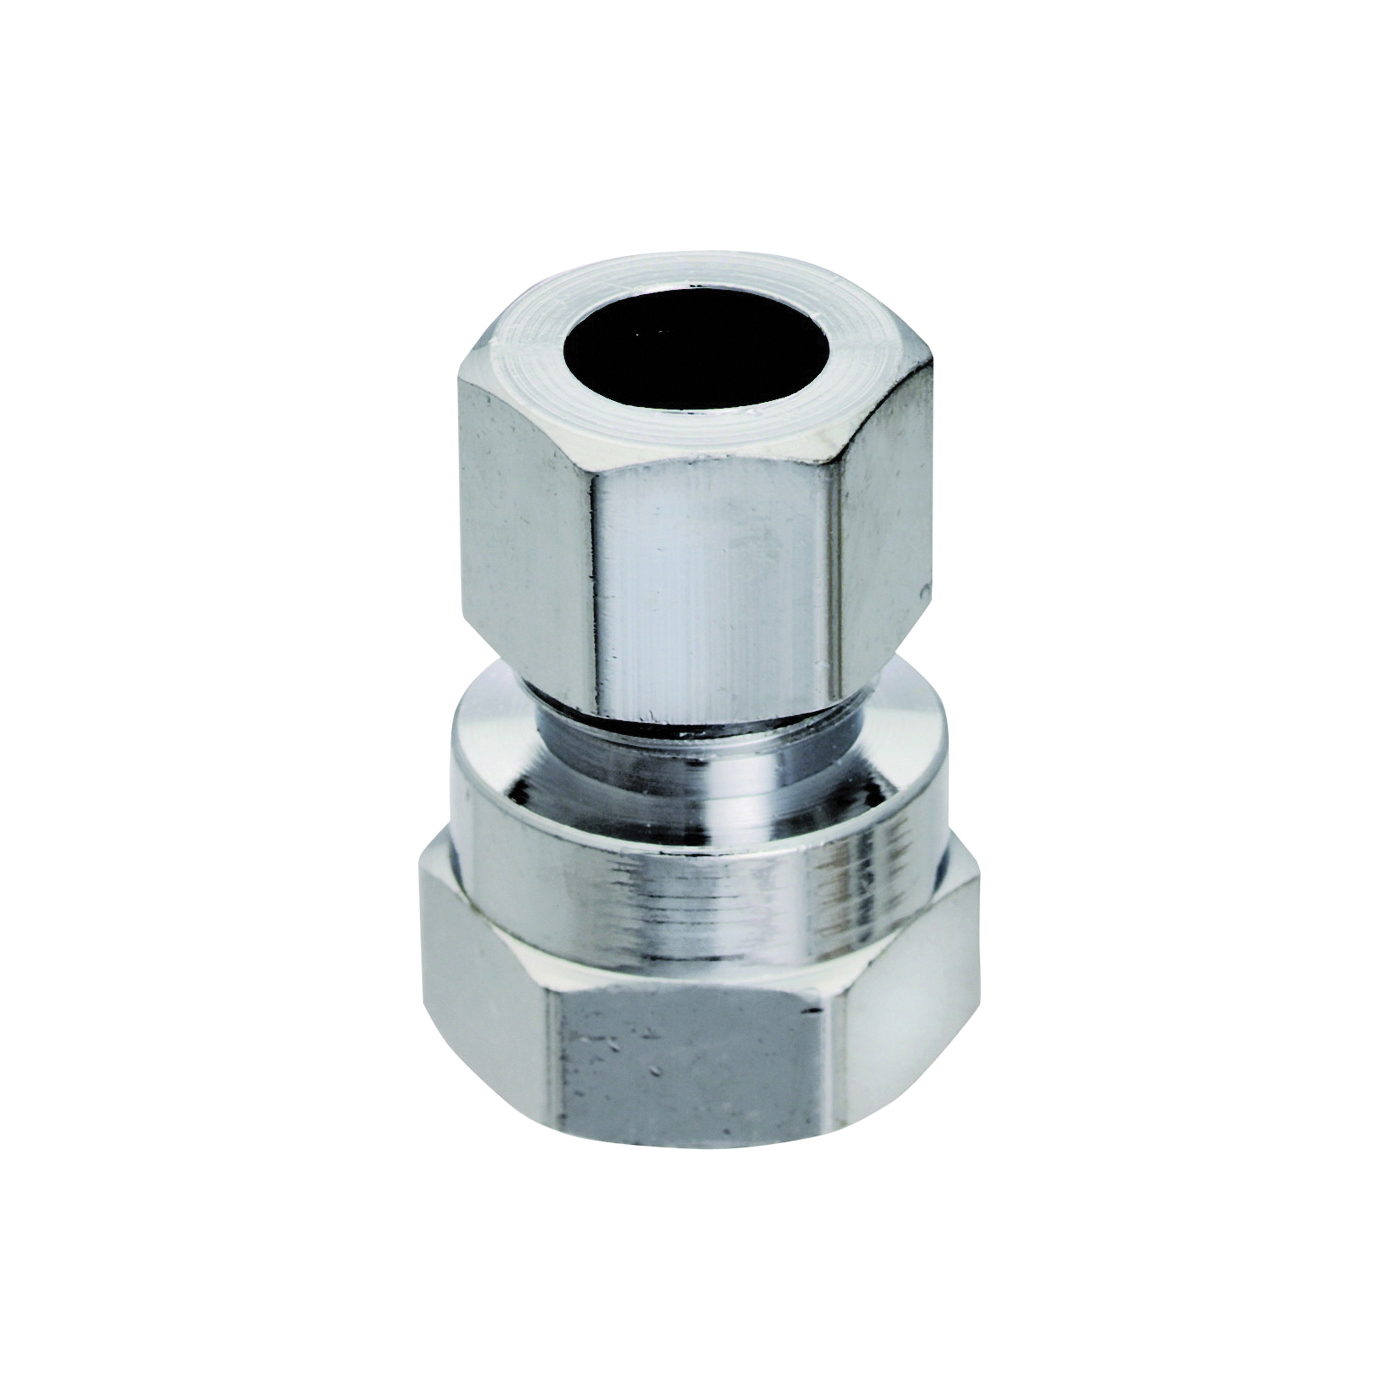 Picture of Plumb Pak PP20073LF Straight Adapter, 1/2 x 3/8 in, FIP x Compression, Chrome